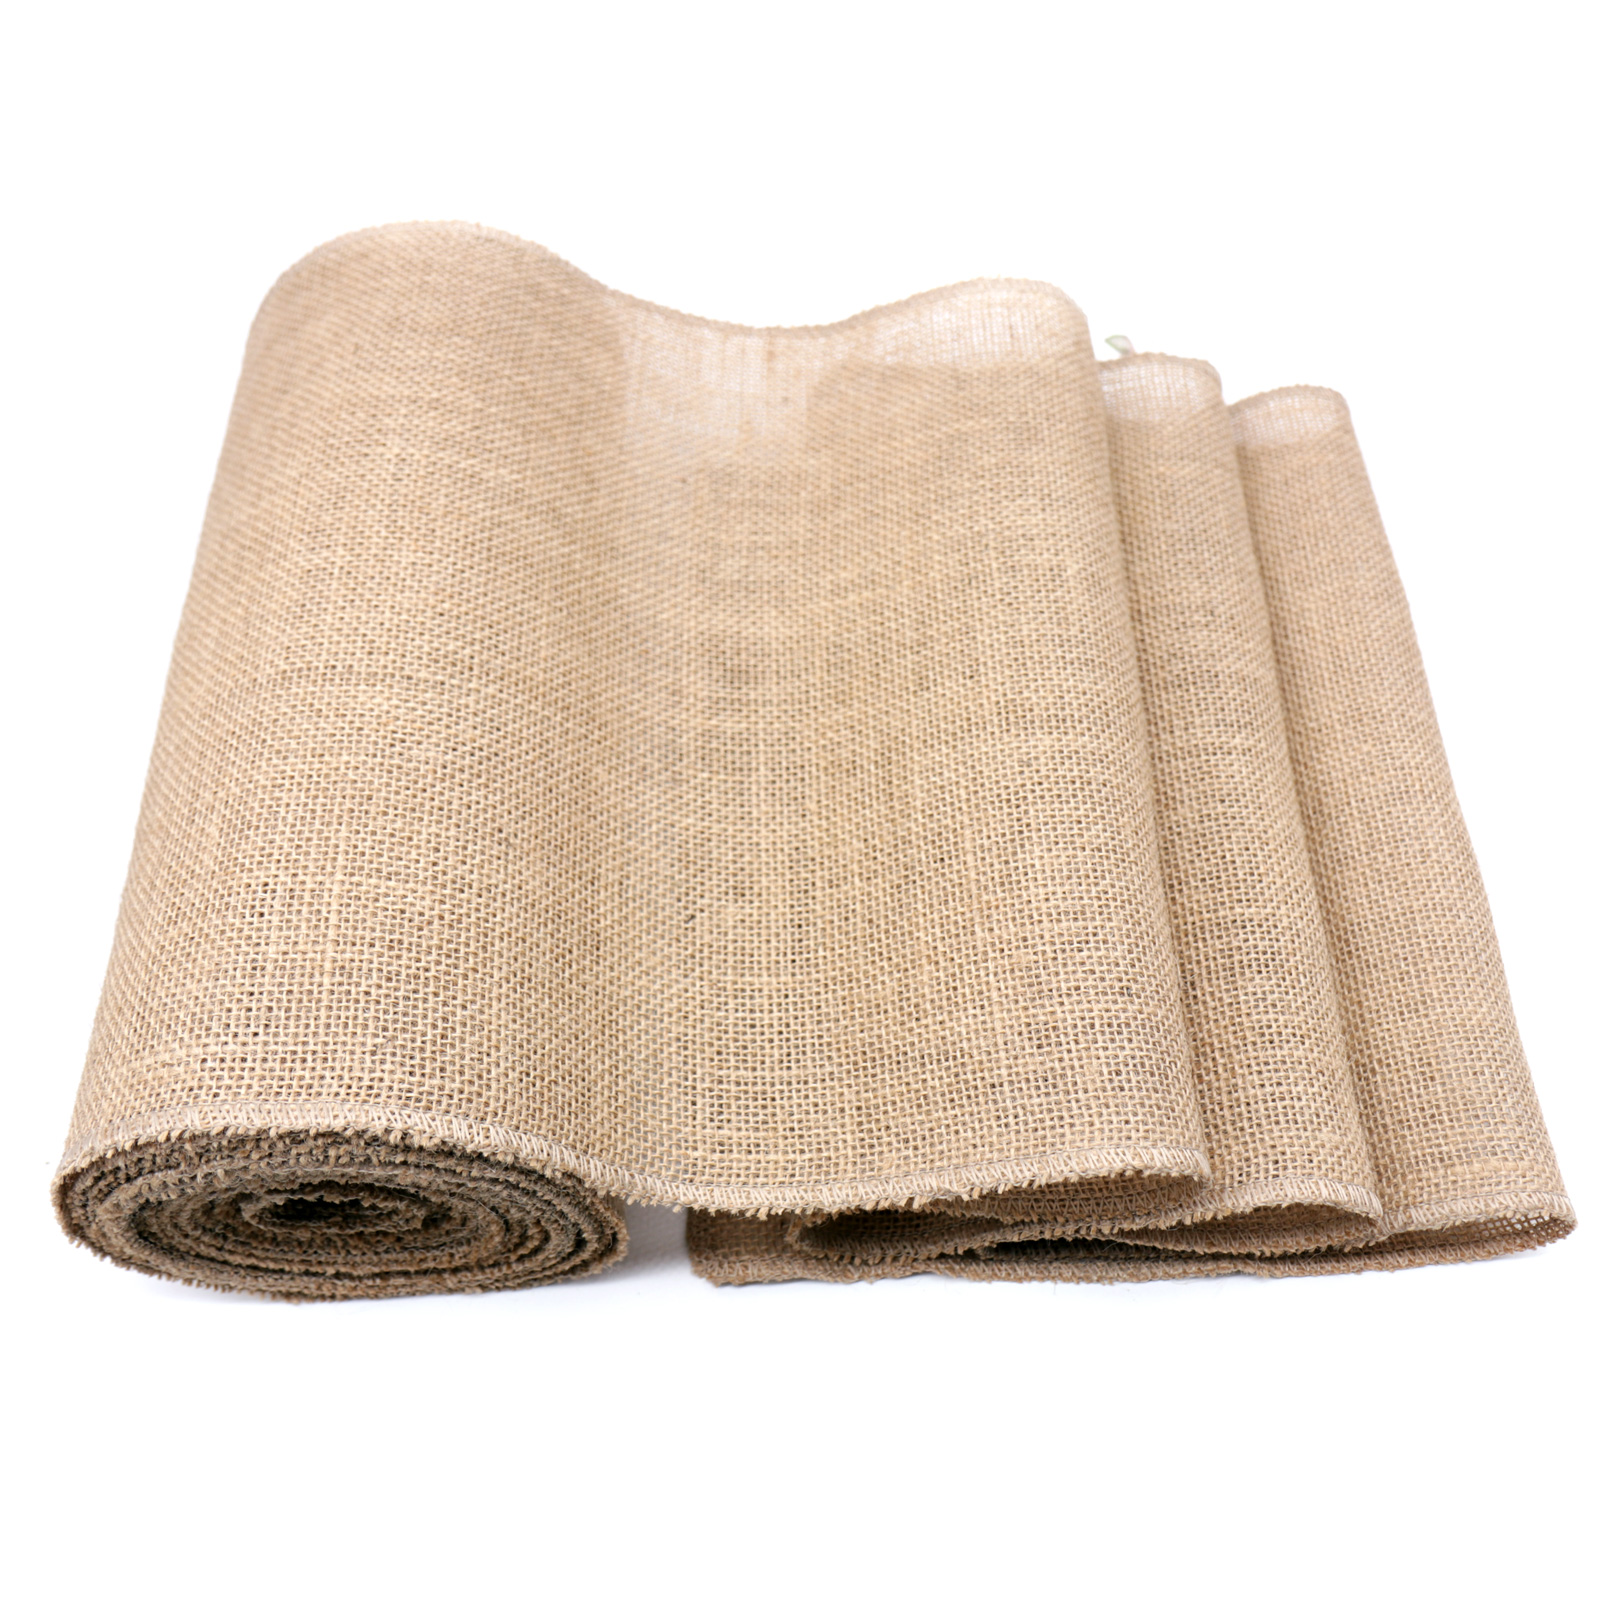 1pcs 30CM*10M Rustic Country Wedding Party Decorations Table Runner Burlap Natural Jute Linen For Table Decor Home Table Cloth